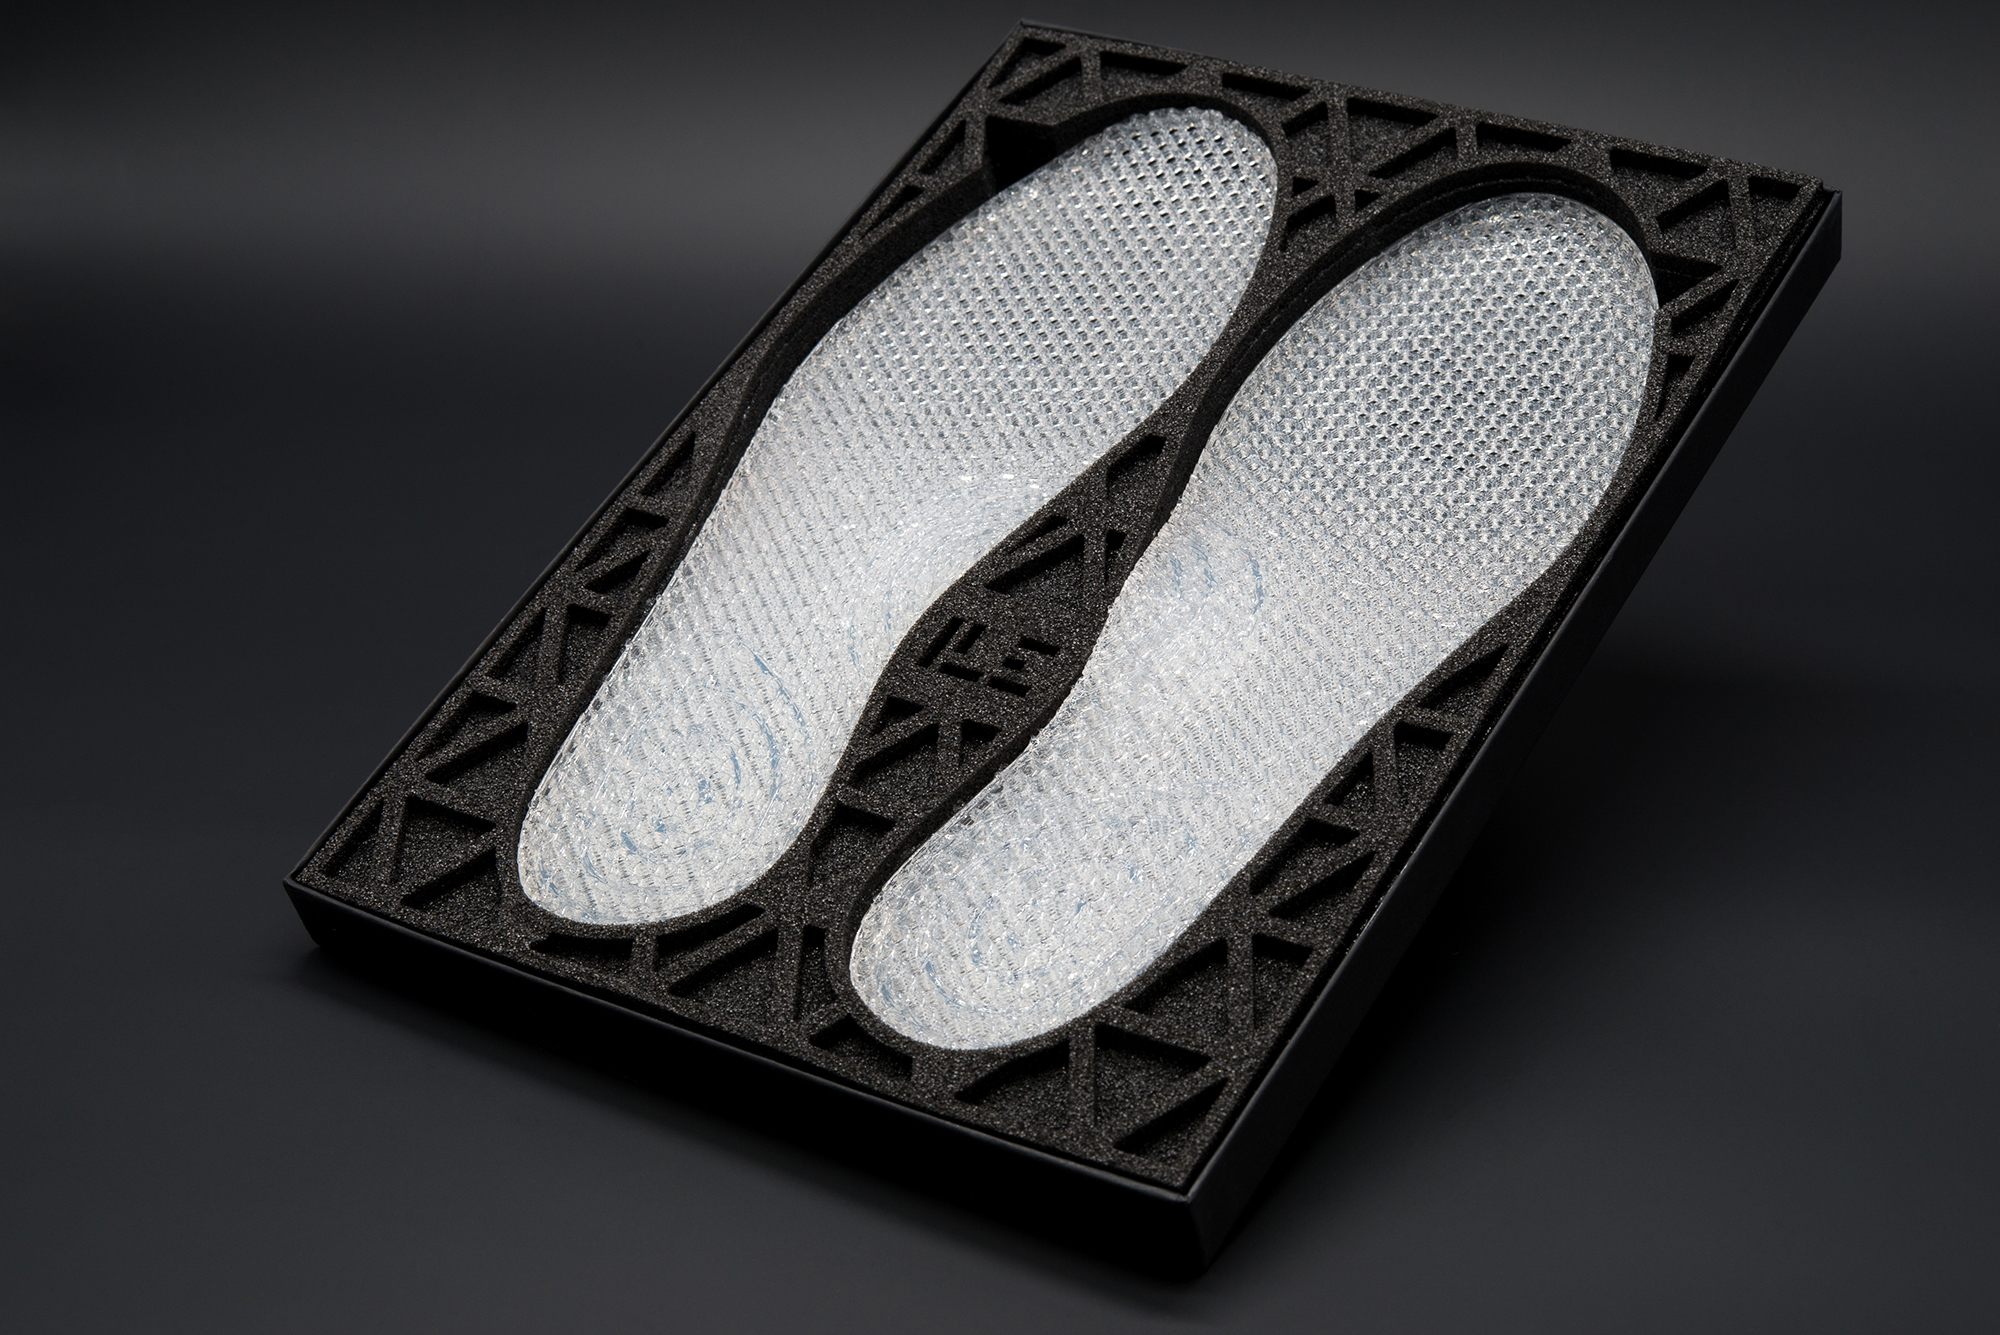 Silicone midsoles are 3D-printed live at Ecco's concept store. (Source: Ecco)